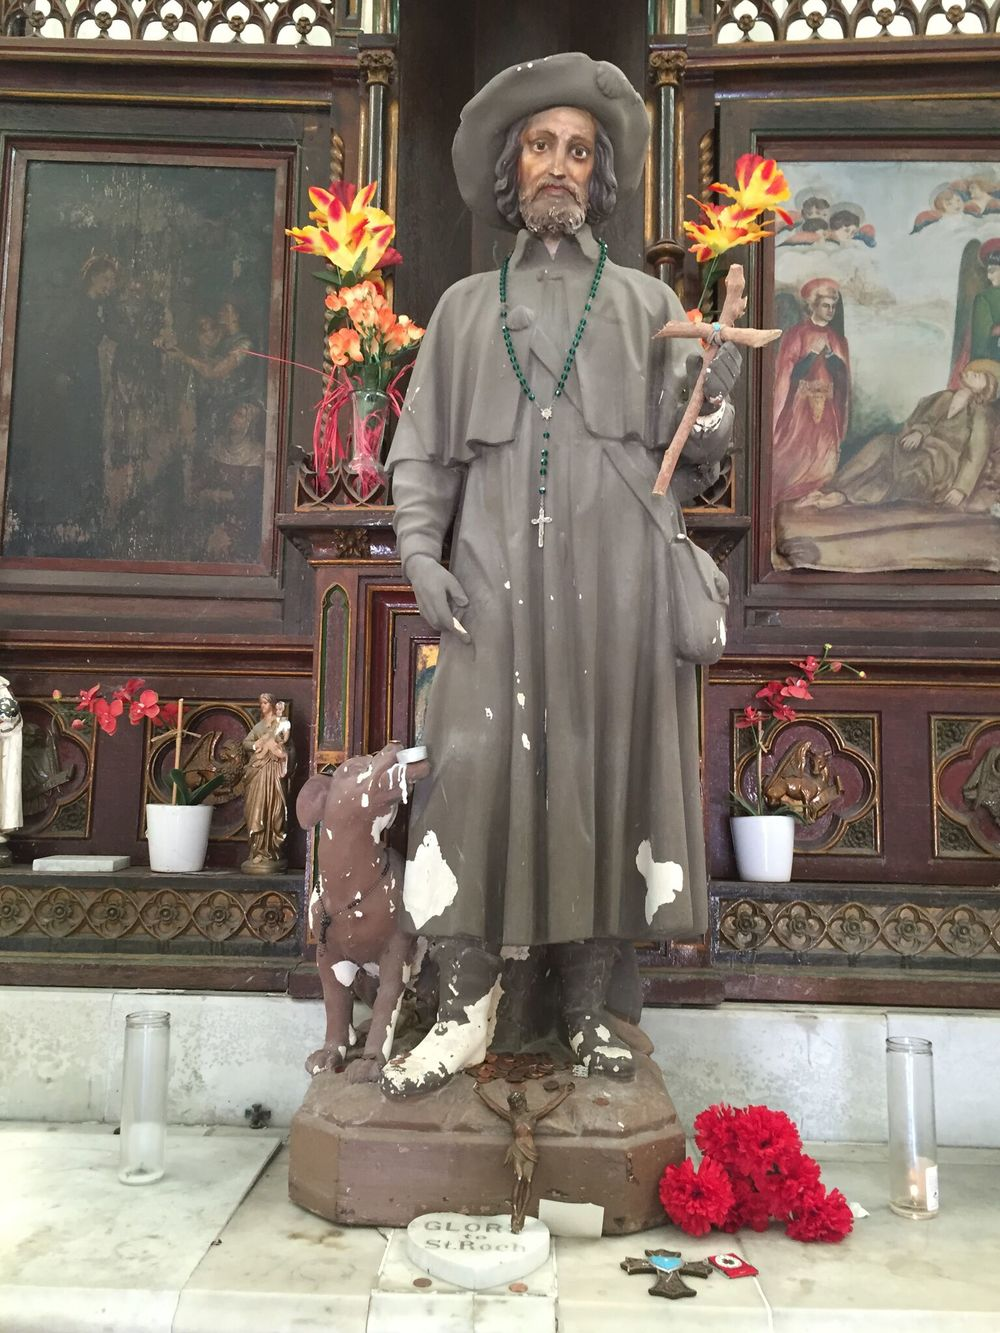 St. Roch and Dog, St. Roch Cemetery